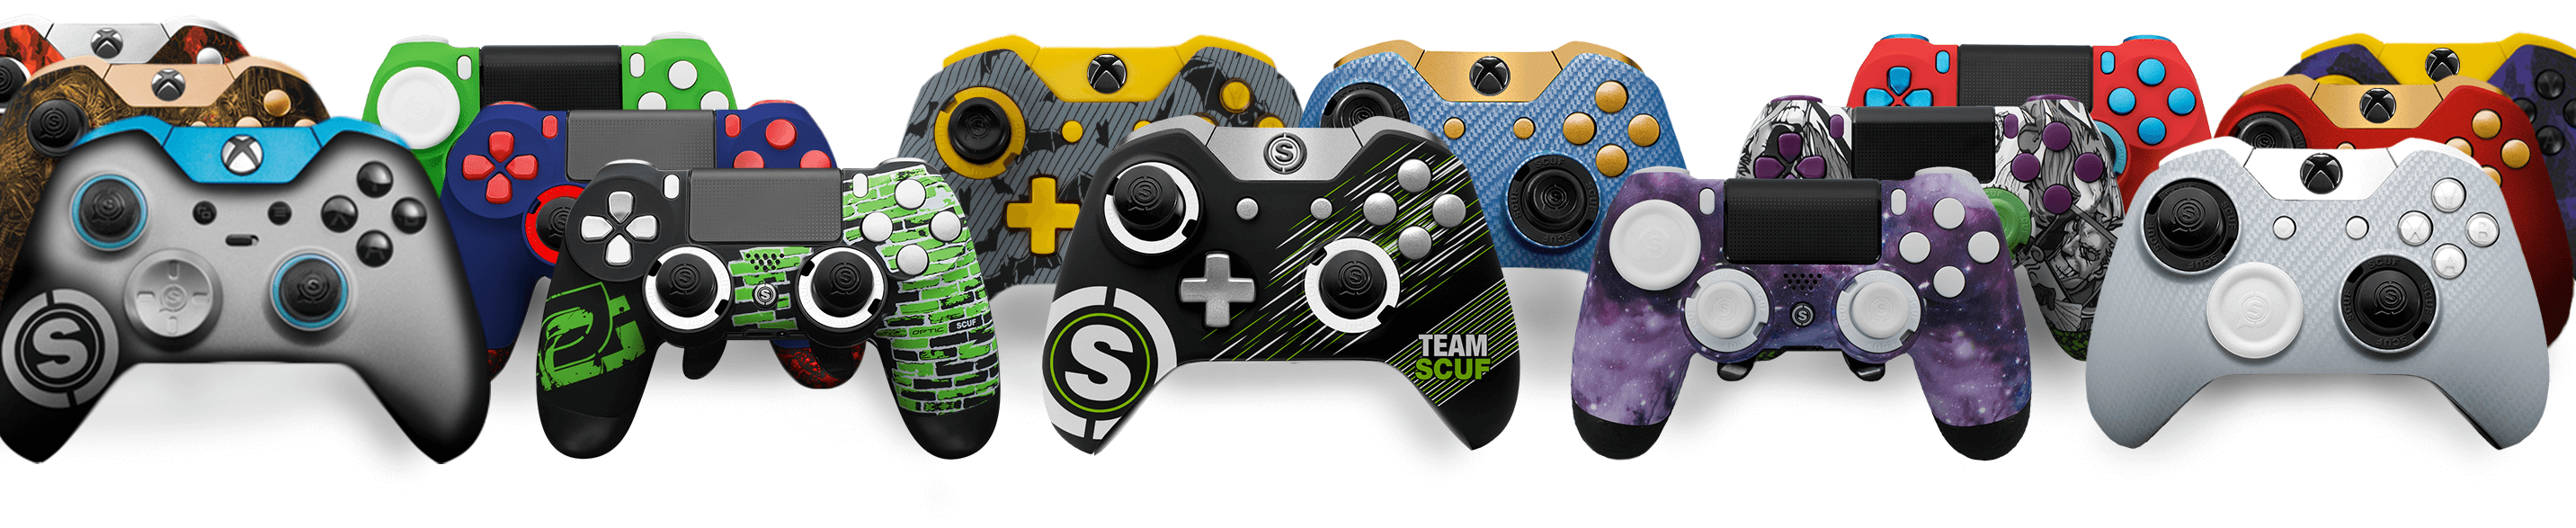 Design and Customization for Professional Controllers